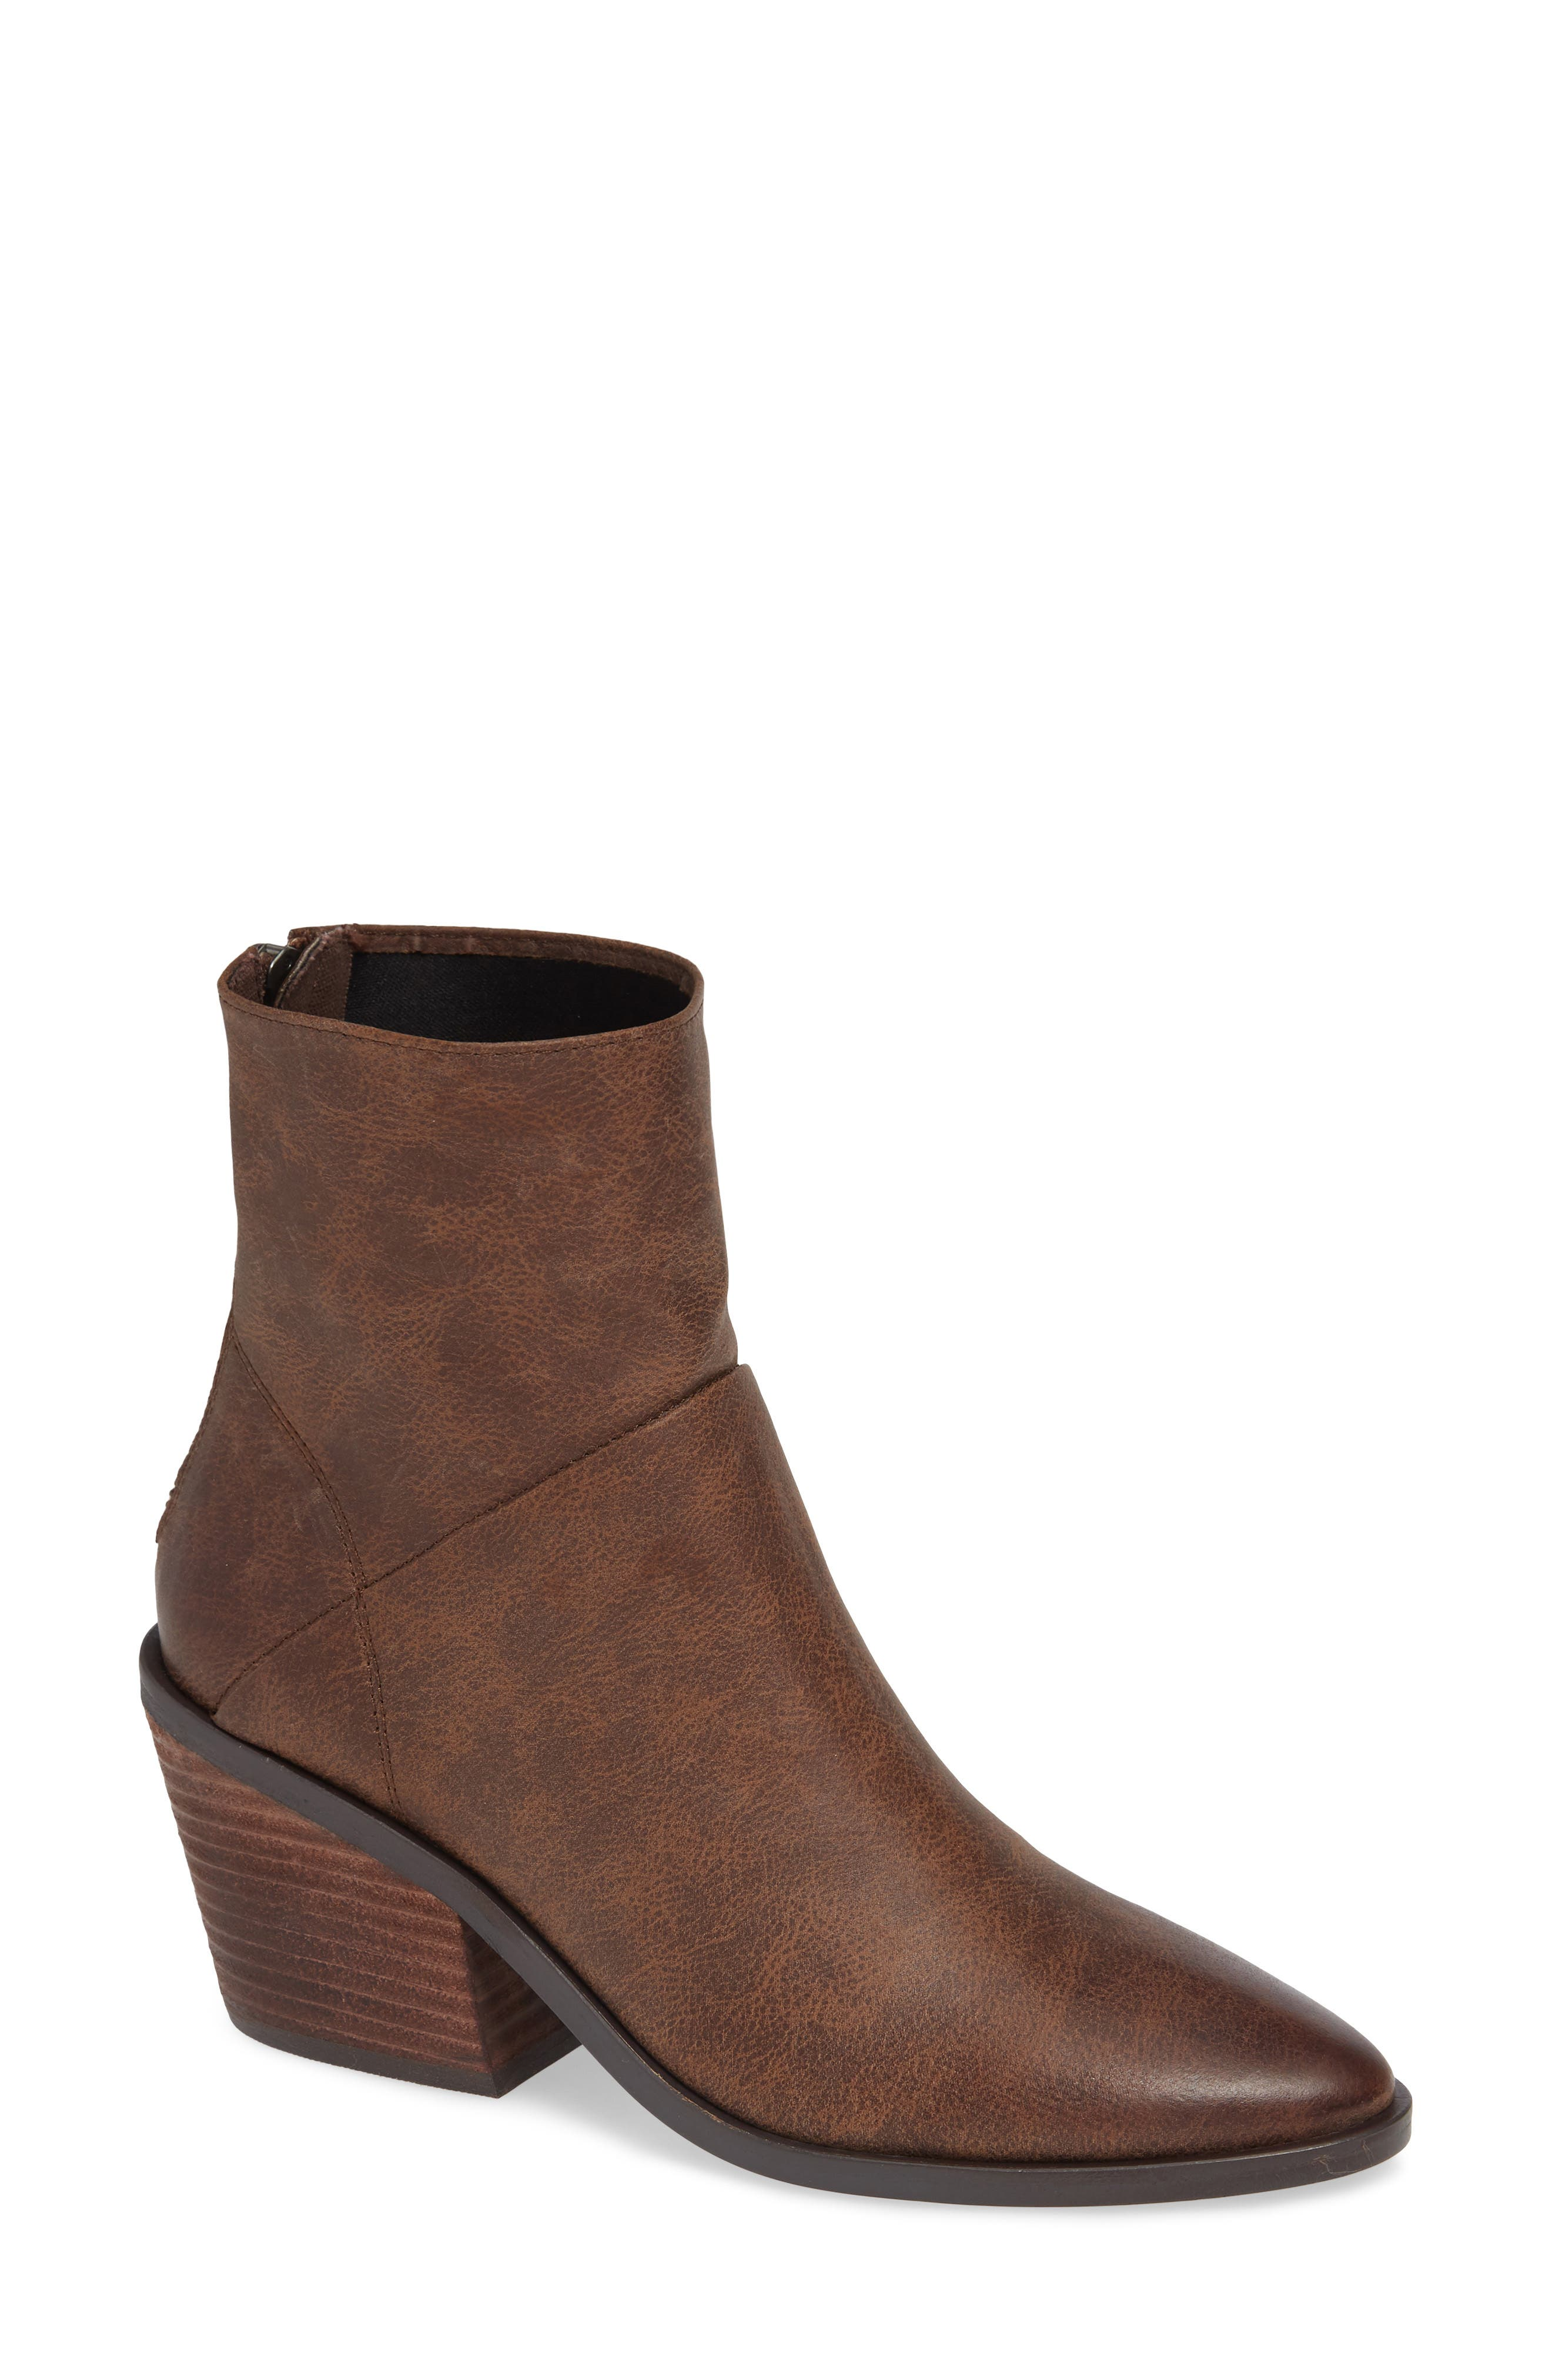 BAND OF GYPSIES Lakota Bootie in Brown Faux Leather